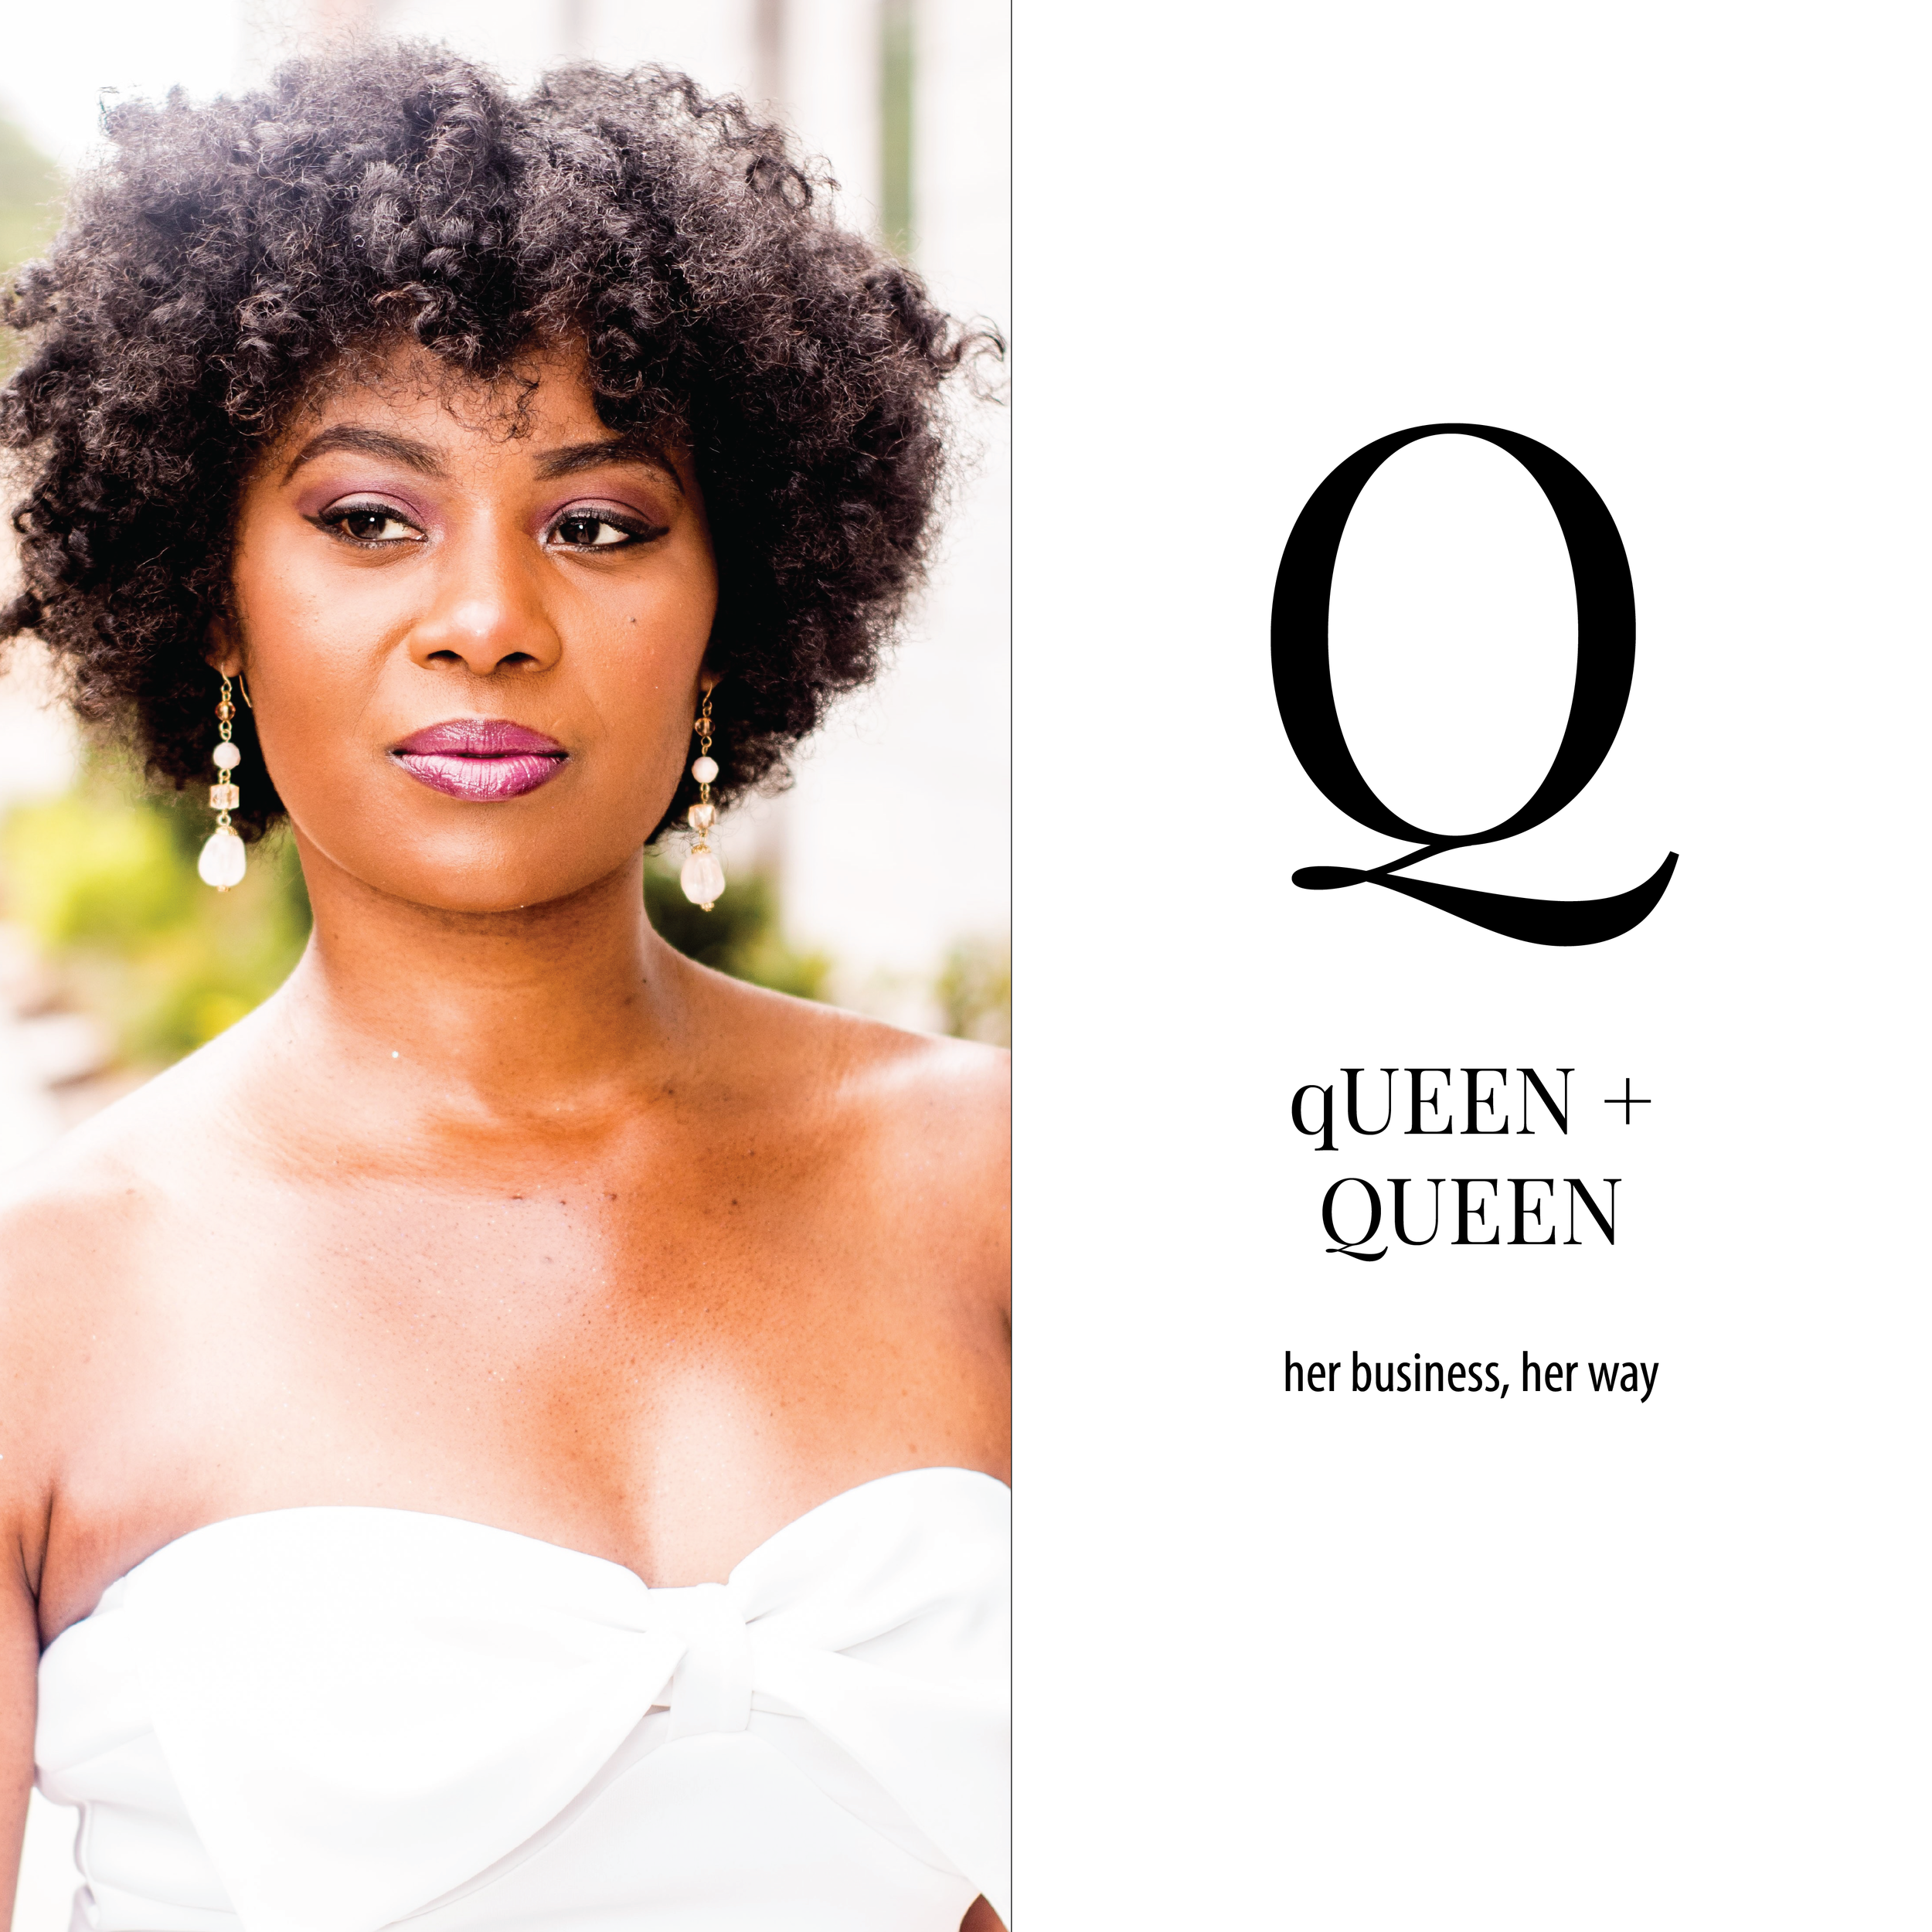 Queen [Recovered]-01.png